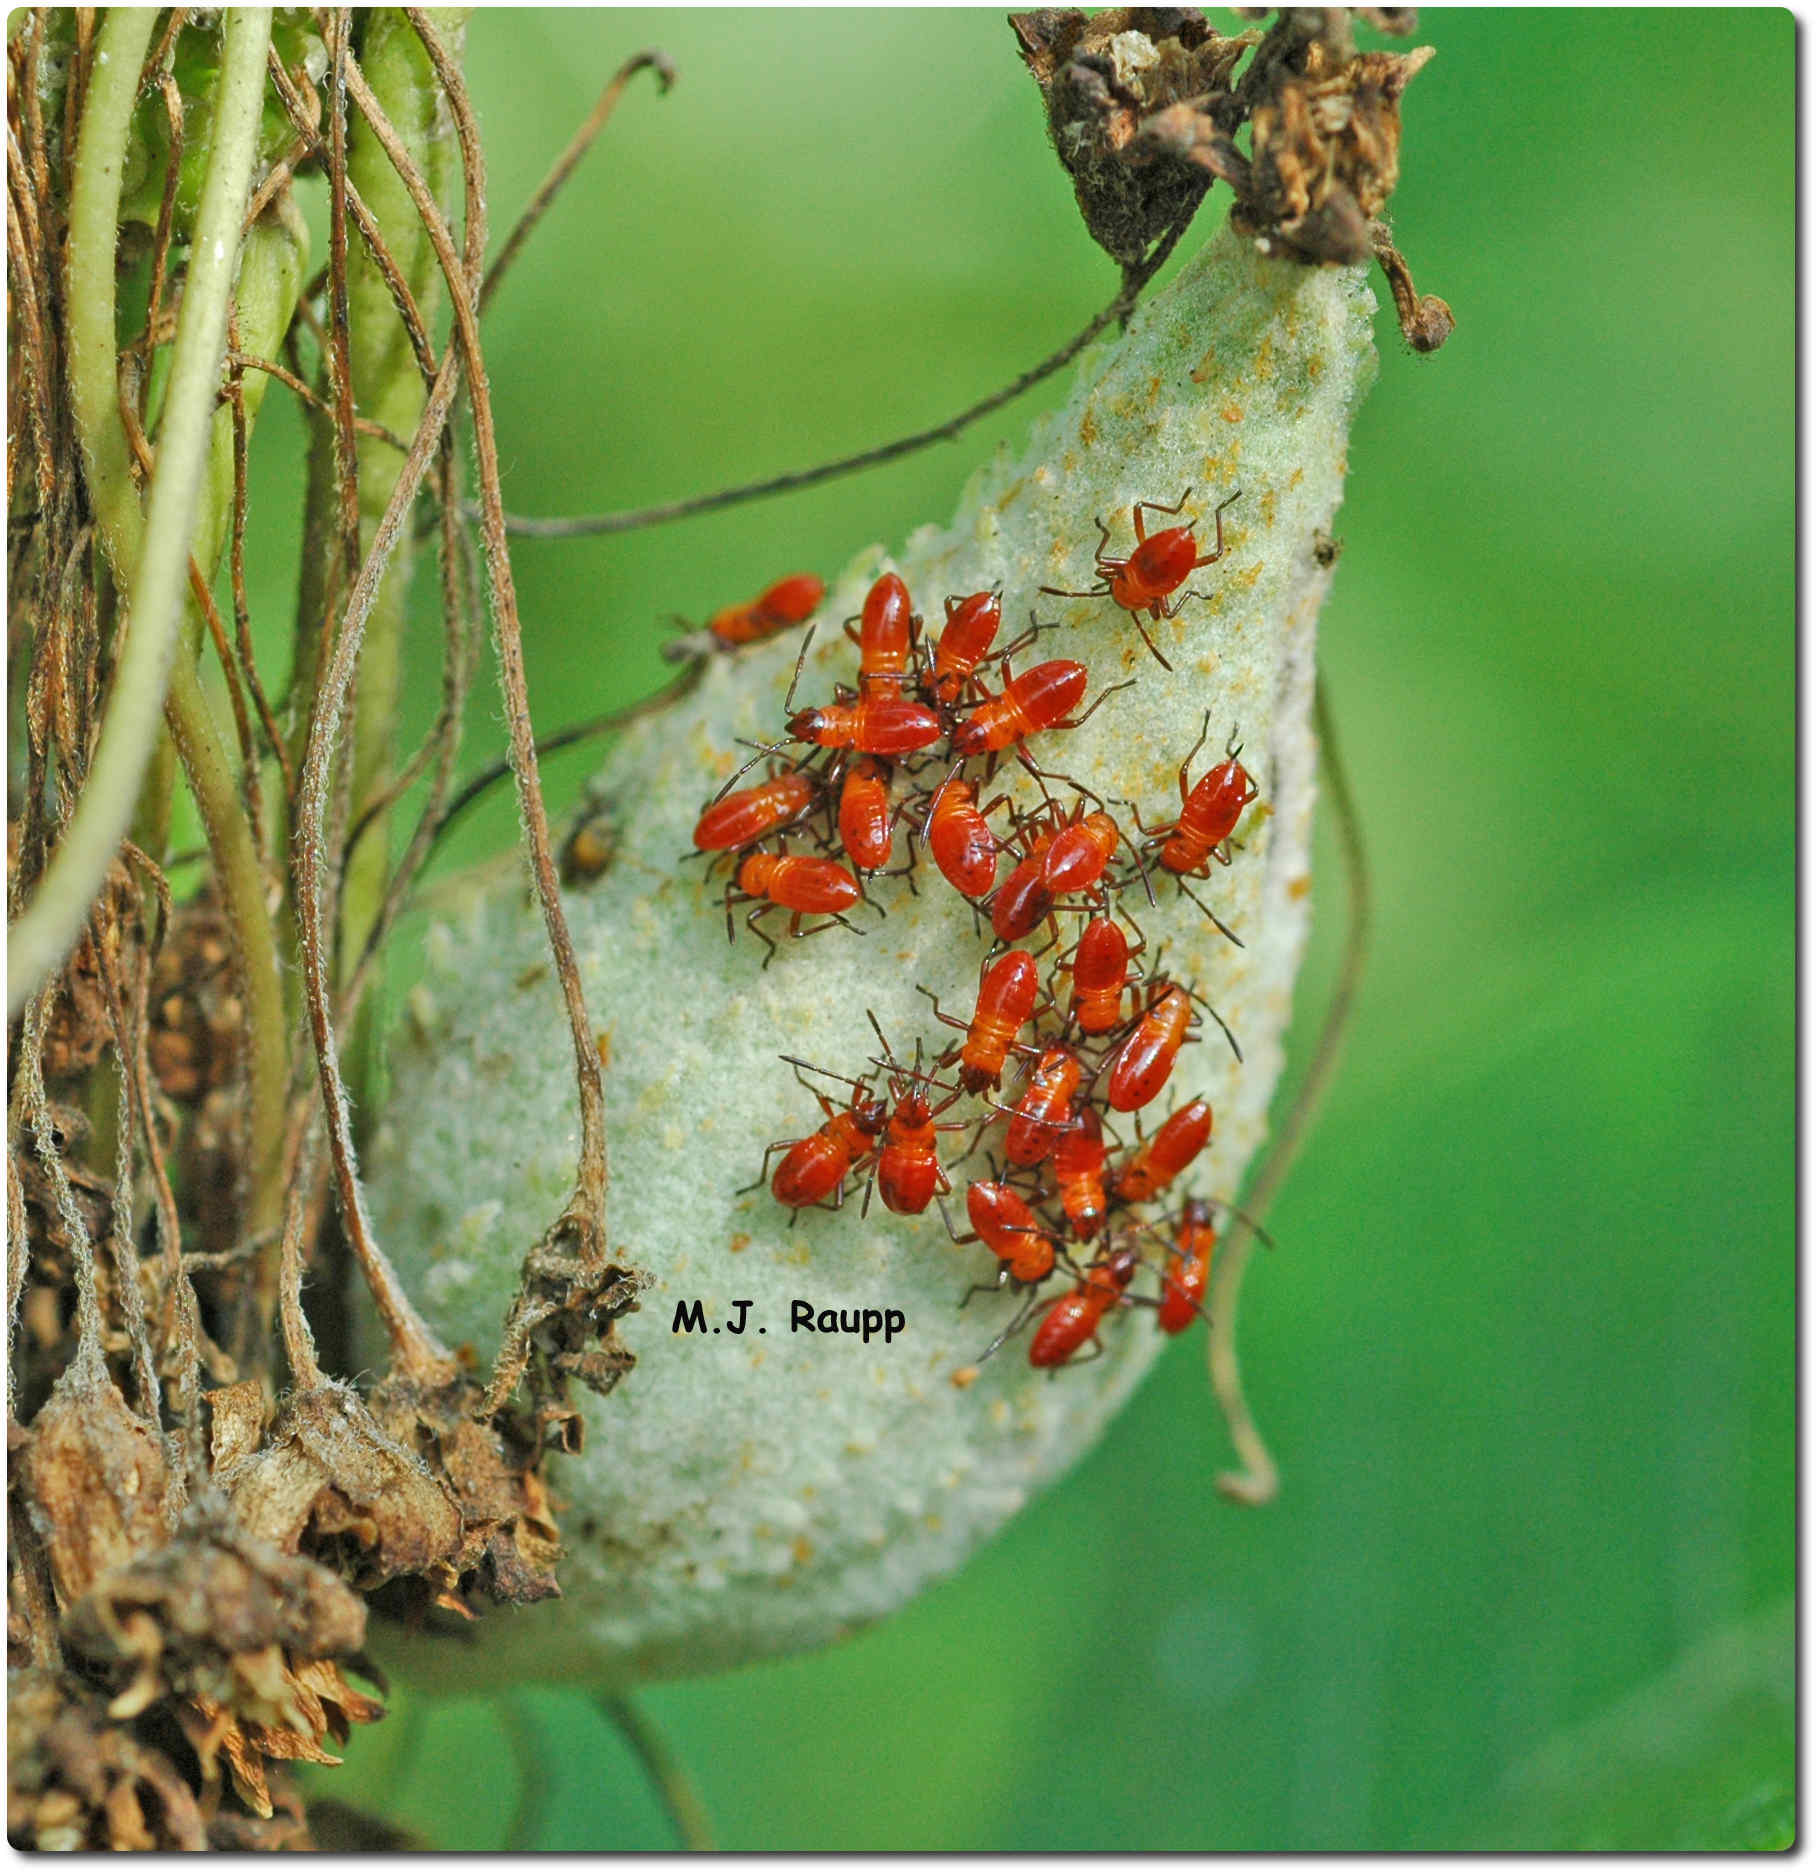 Long beaks enable nymphs of milkweed bugs to eat seeds within the milkweed pod.